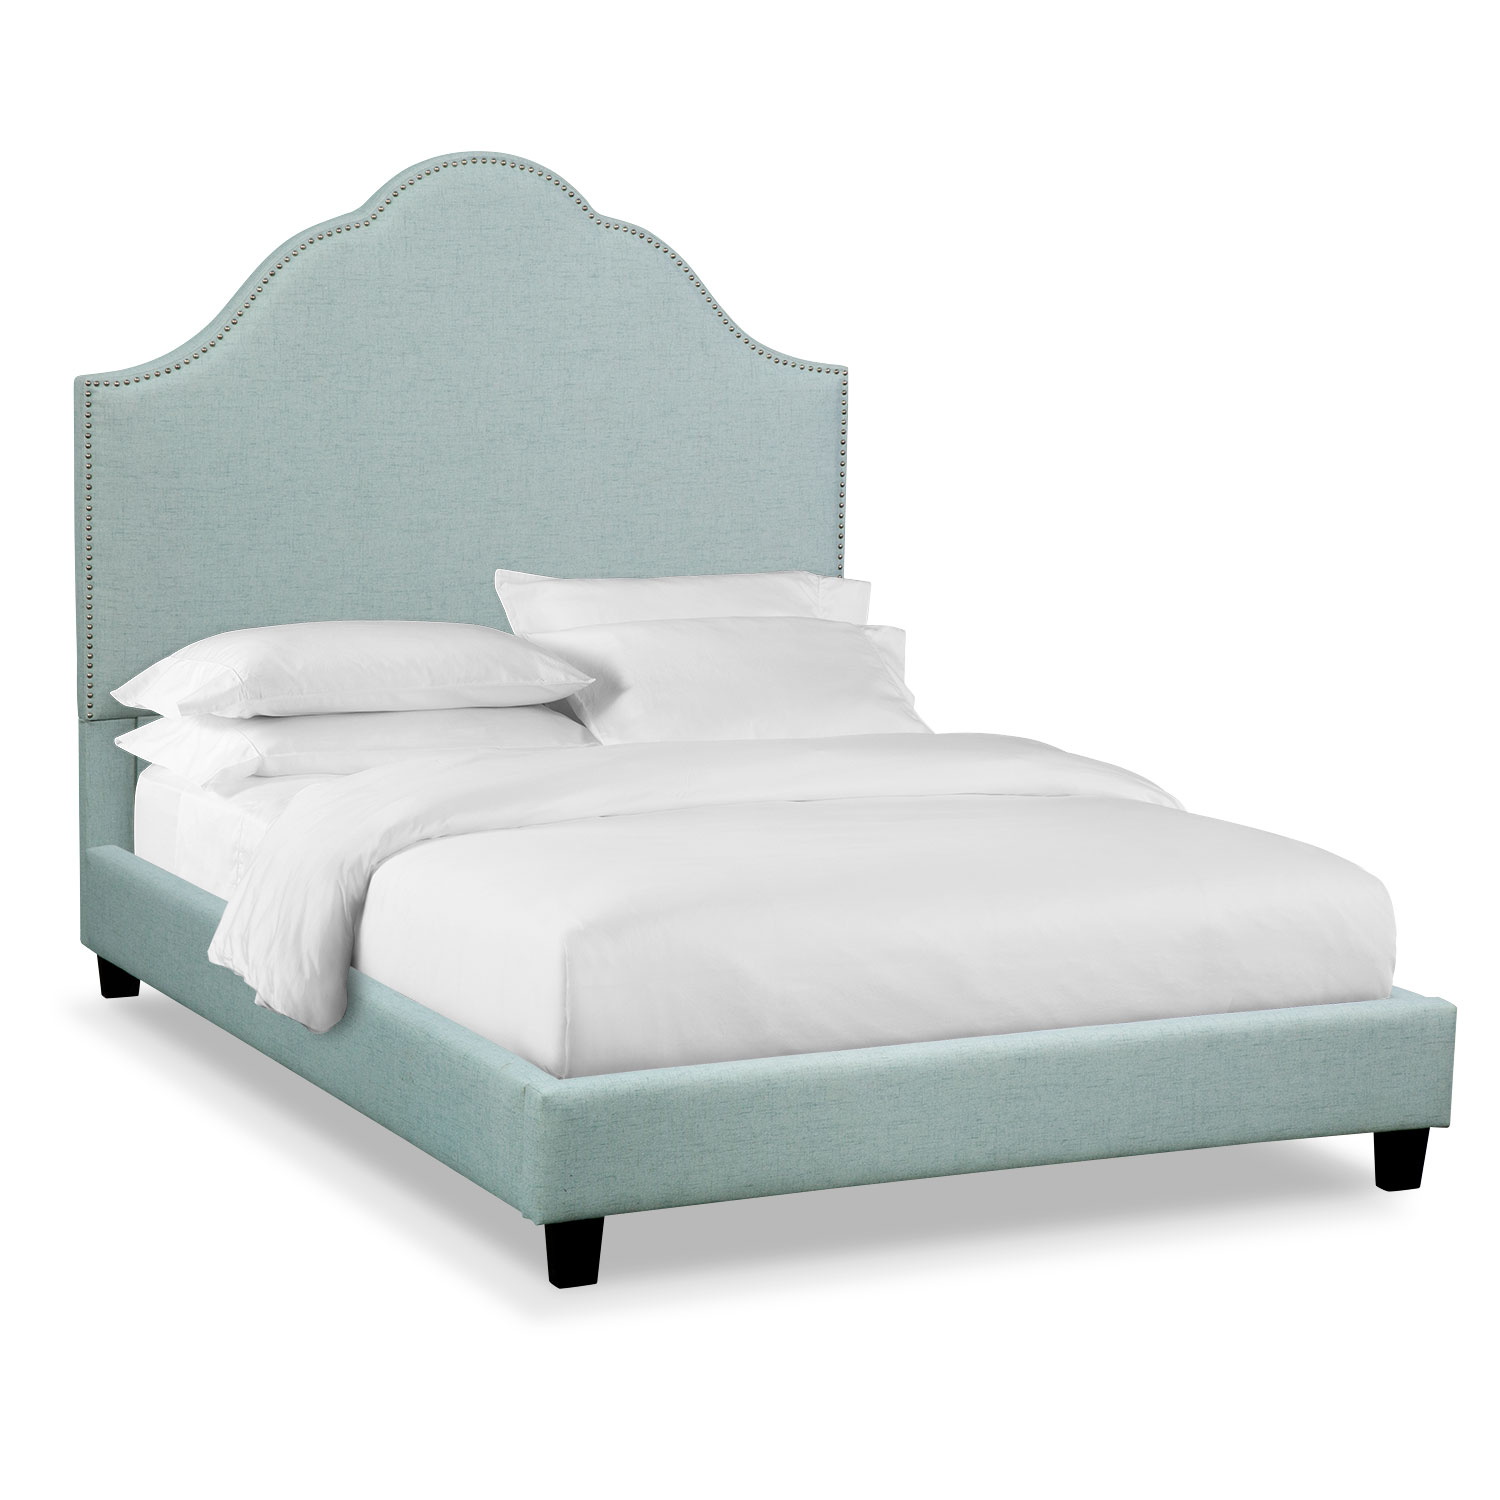 Maya King Upholstered Bed - Aqua